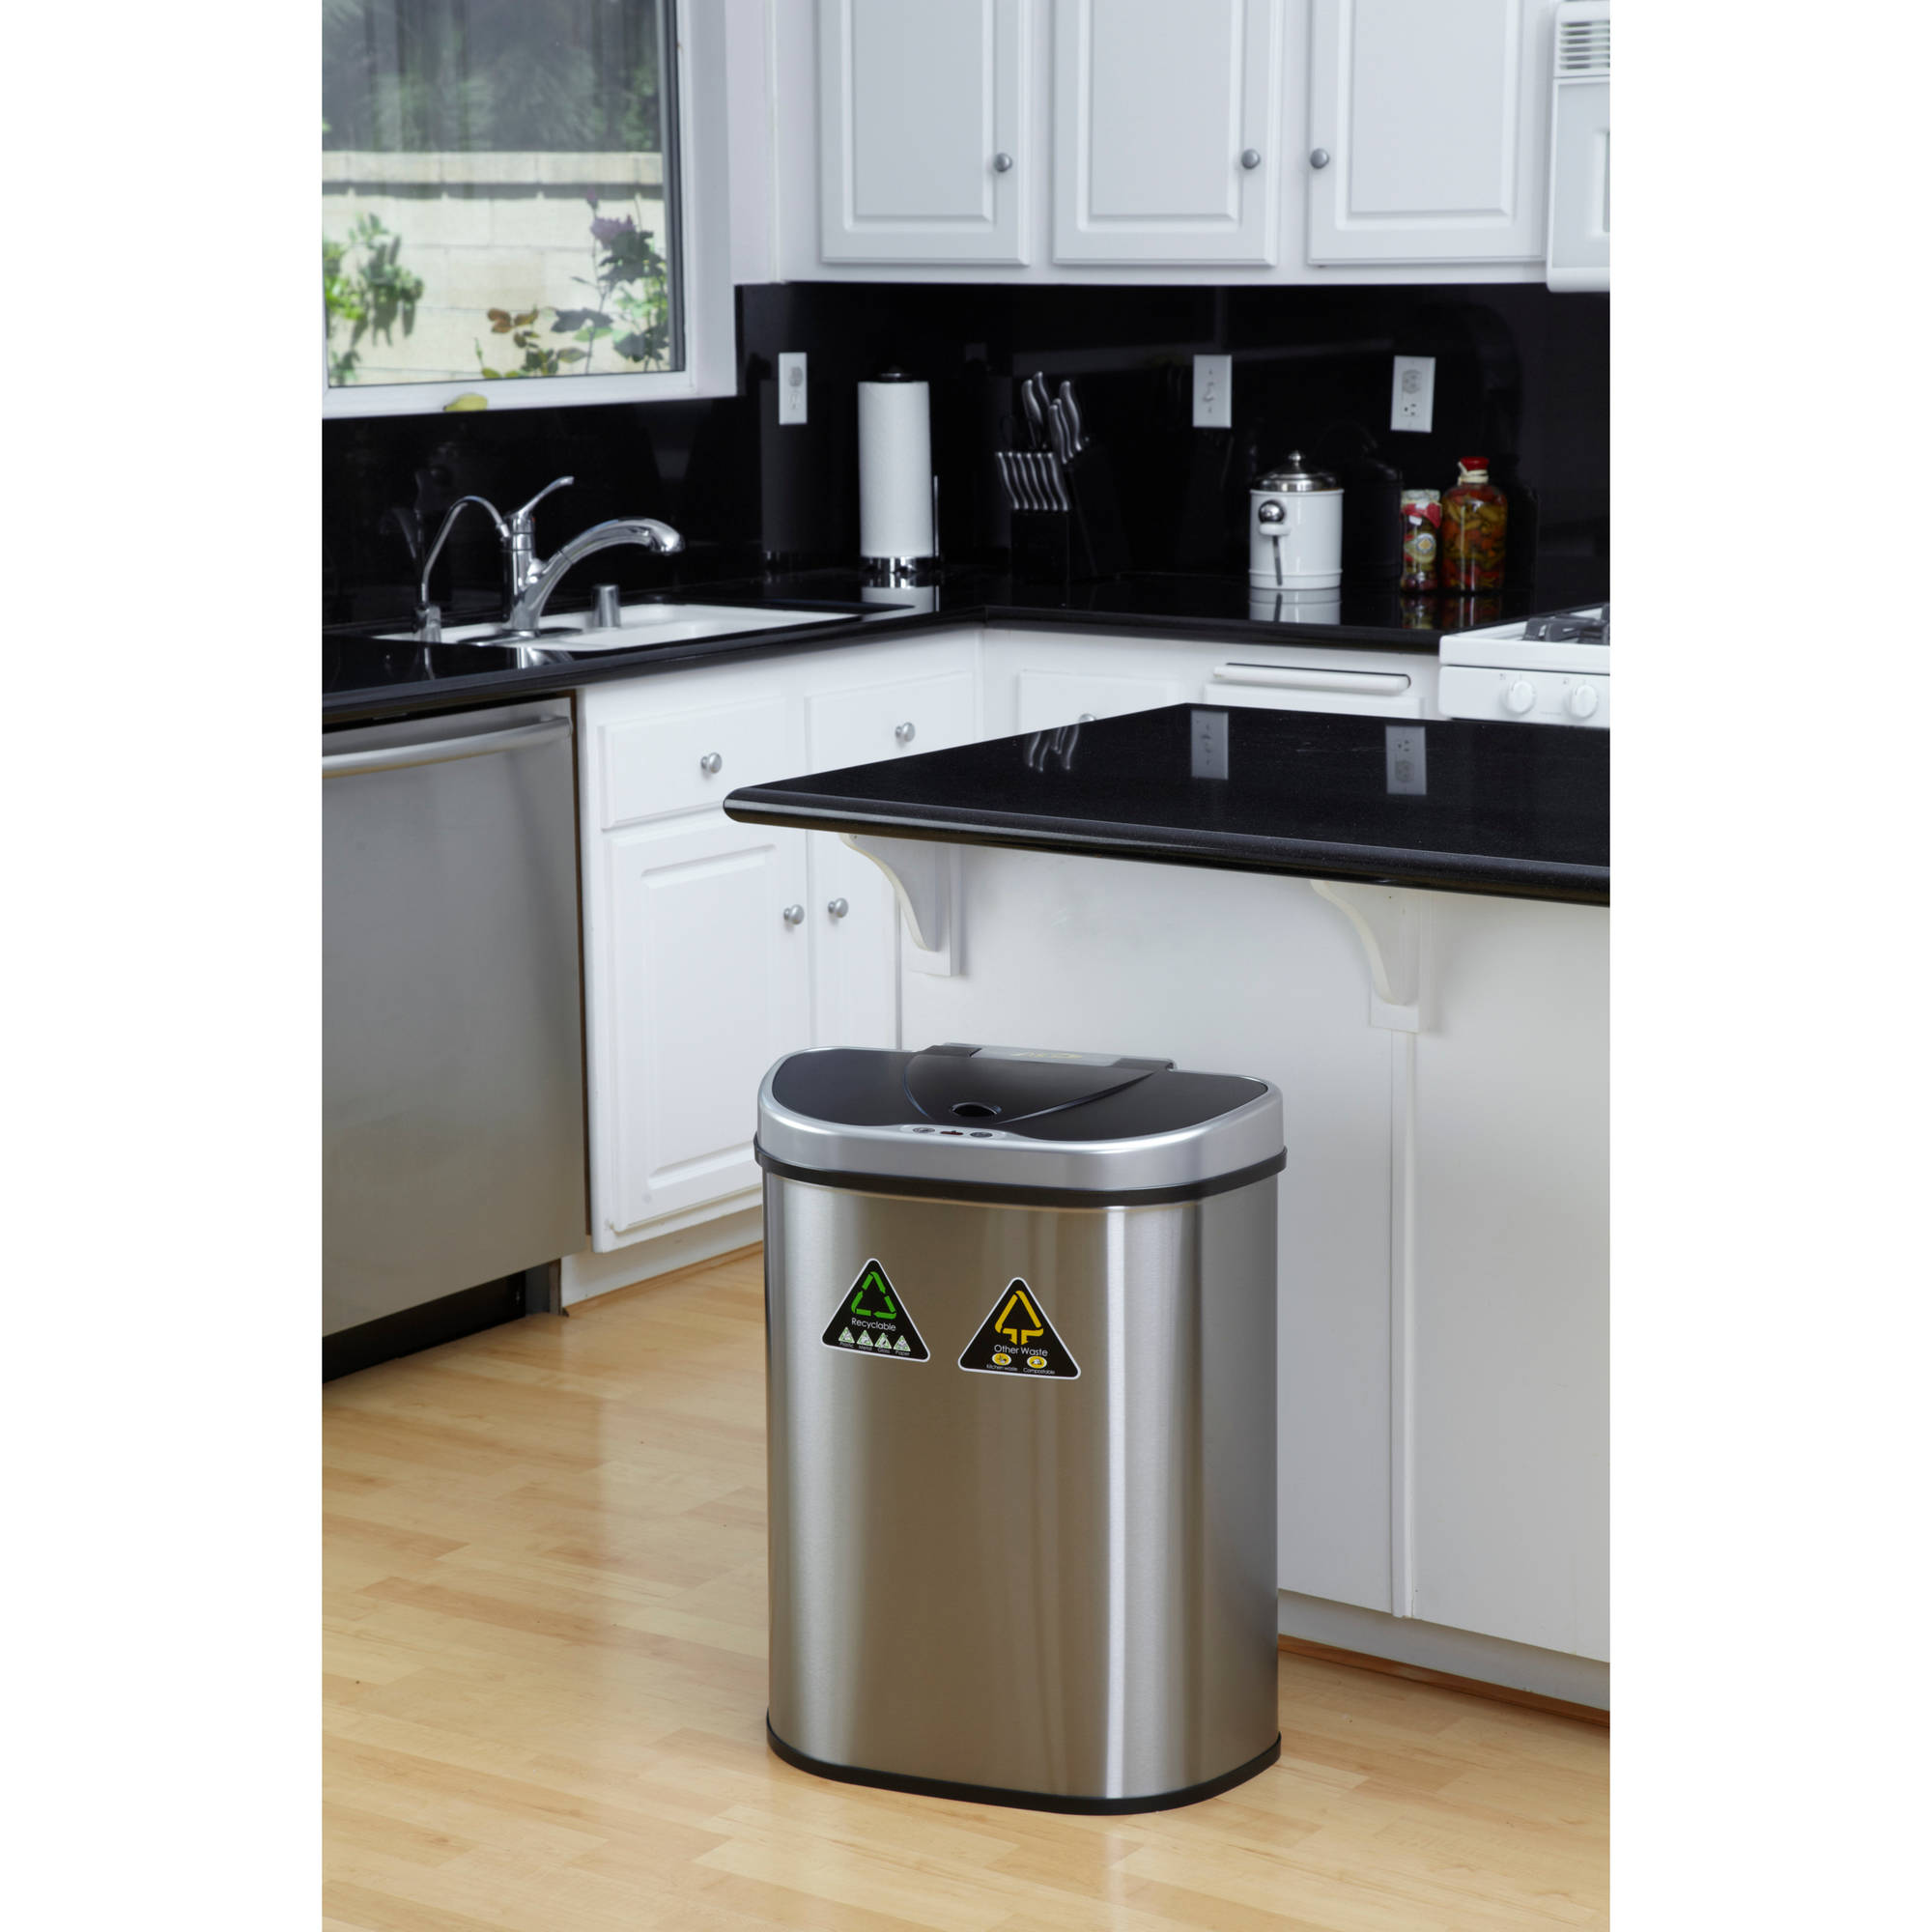 Nine Stars 18 5 Gallon Motion Sensor Recycle Unit and Trash Can  Stainless Steel Walmart com